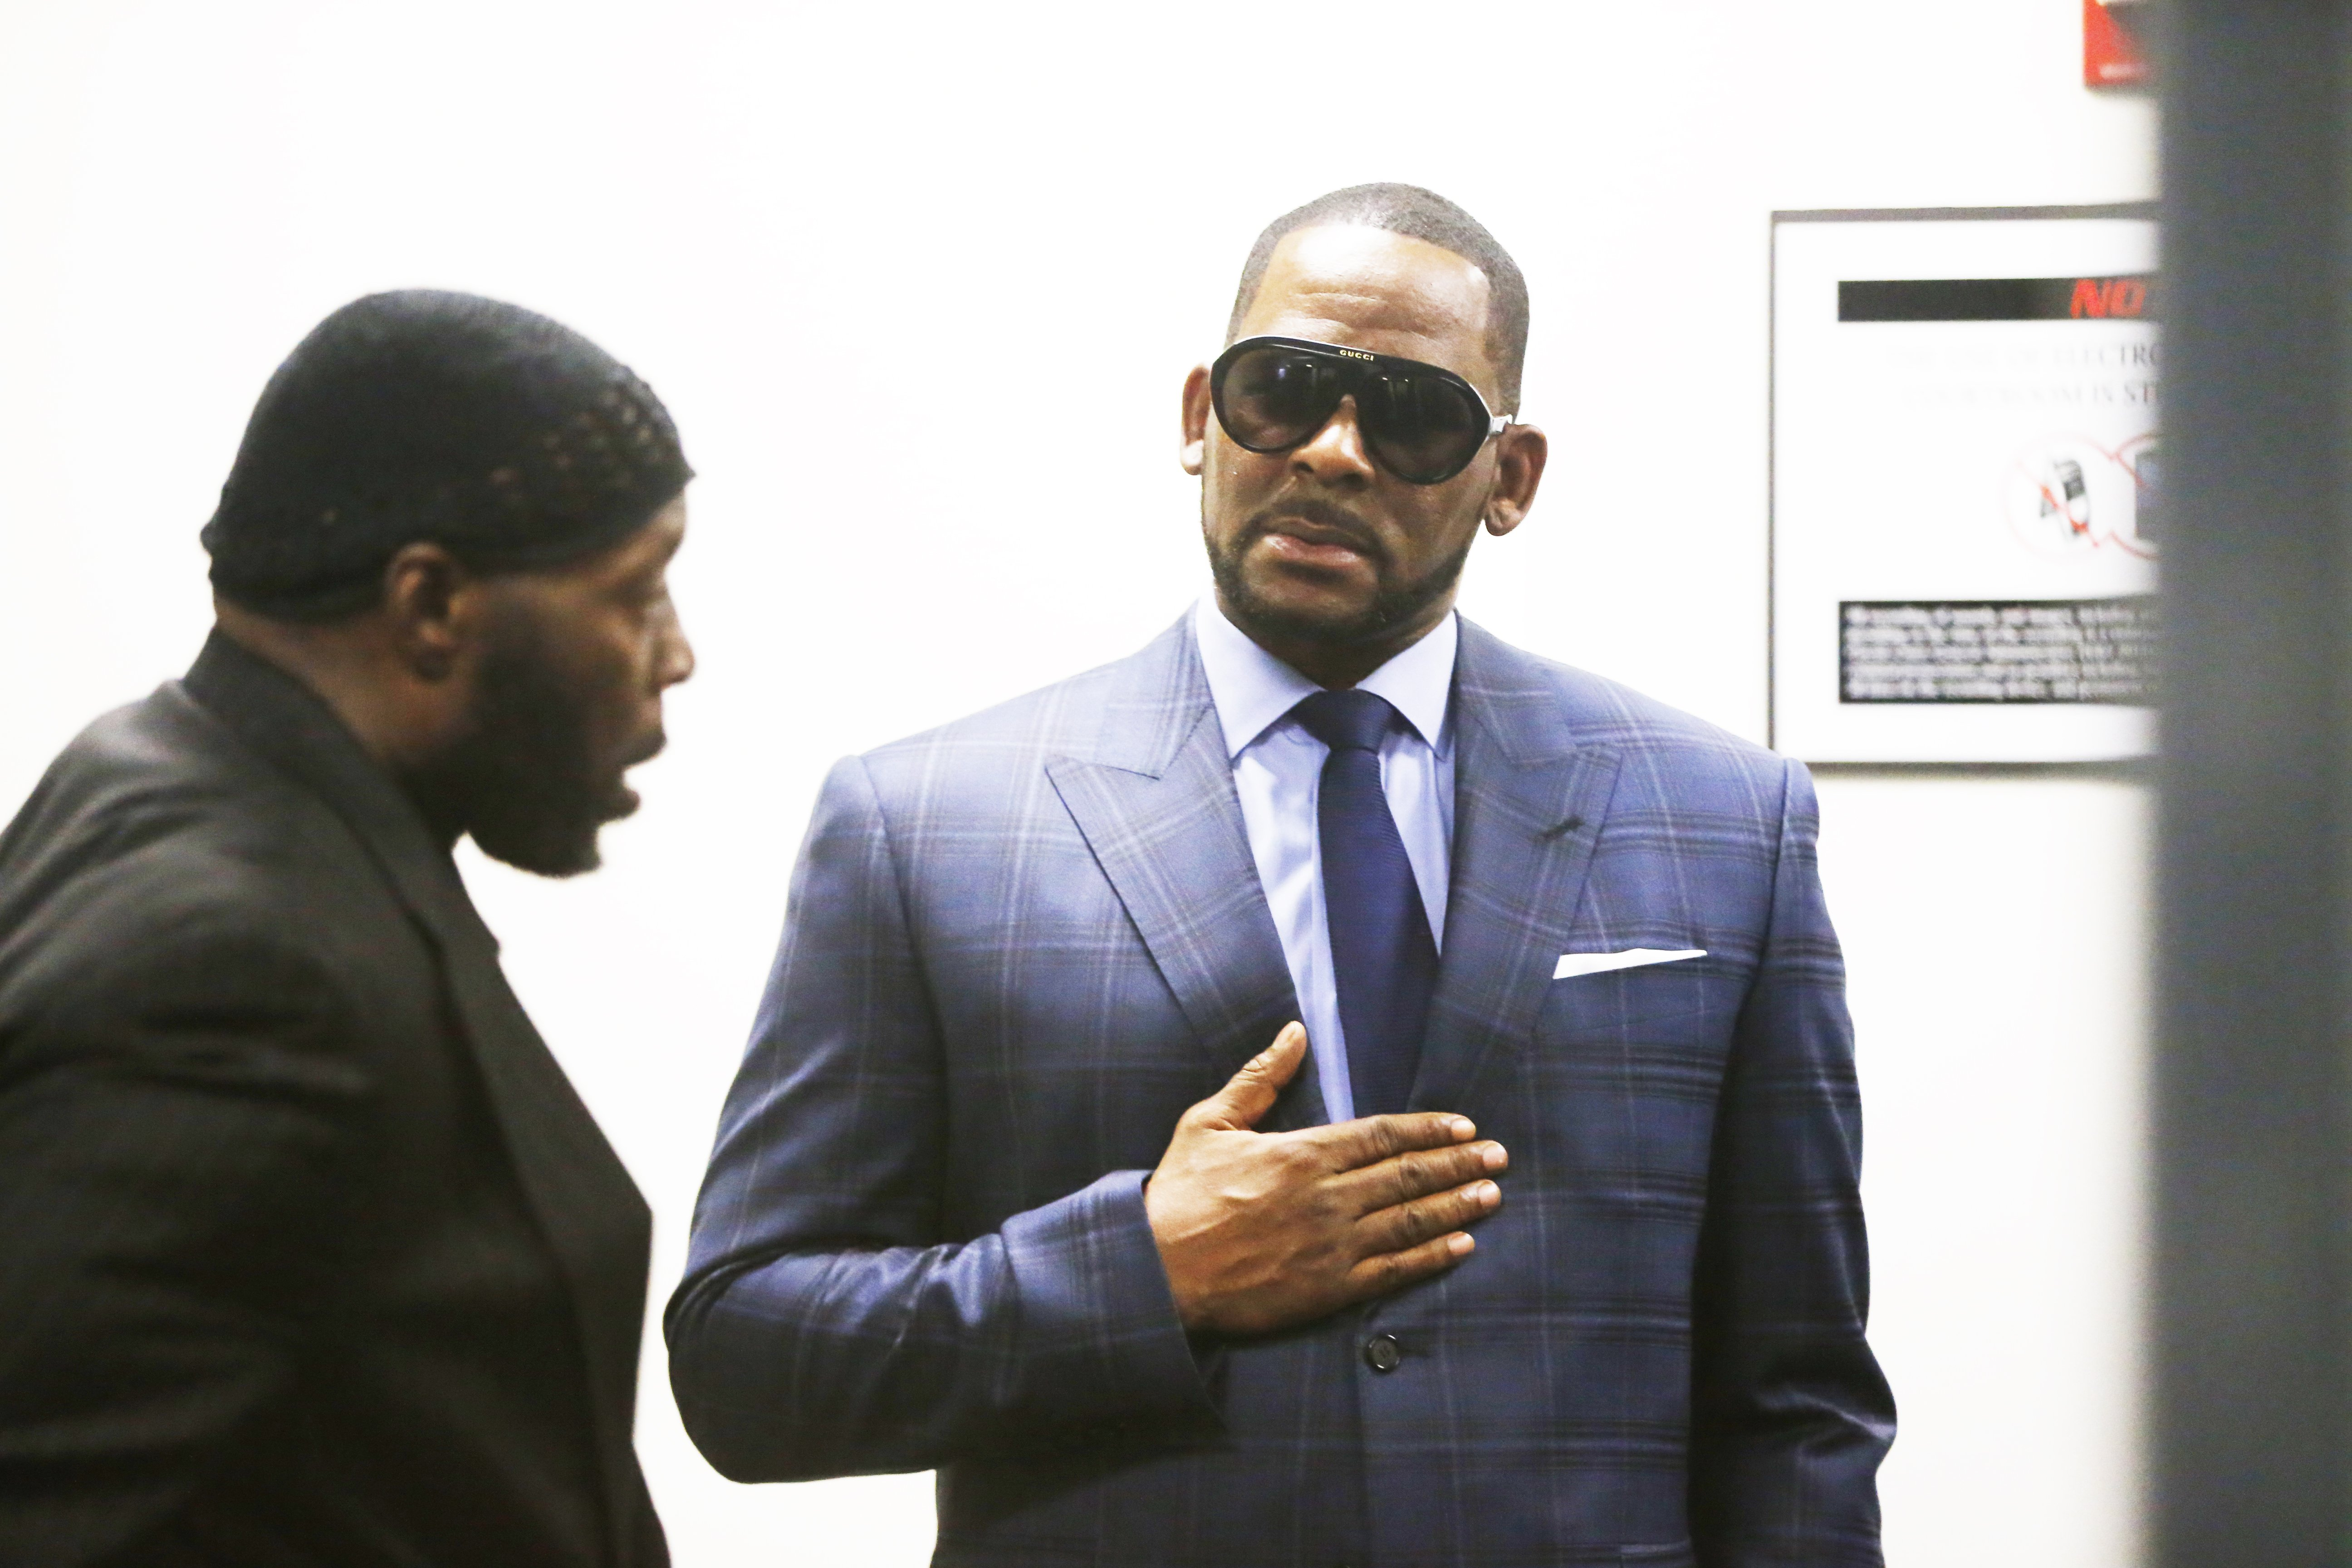 R. Kelly arrives at the Daley Center for his hearing on March 6, 2019 in Chicago, Illinois. | Photo: GettyImages